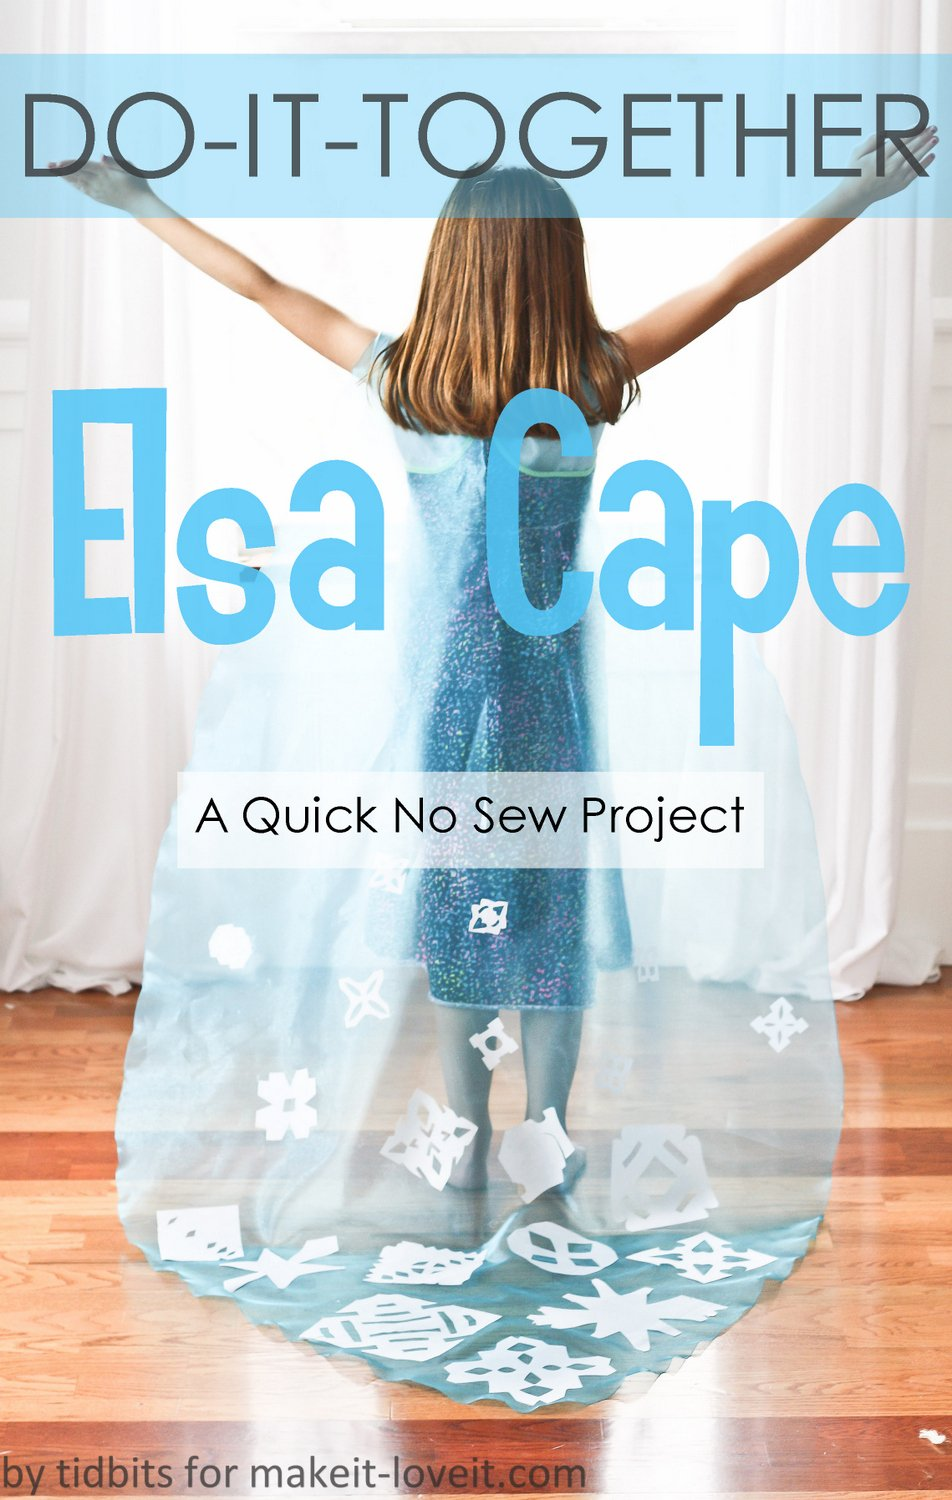 http://www.makeit-loveit.com/wp-content/uploads/2014/03/Do-It-Together-Elsa-Cape-1.jpg